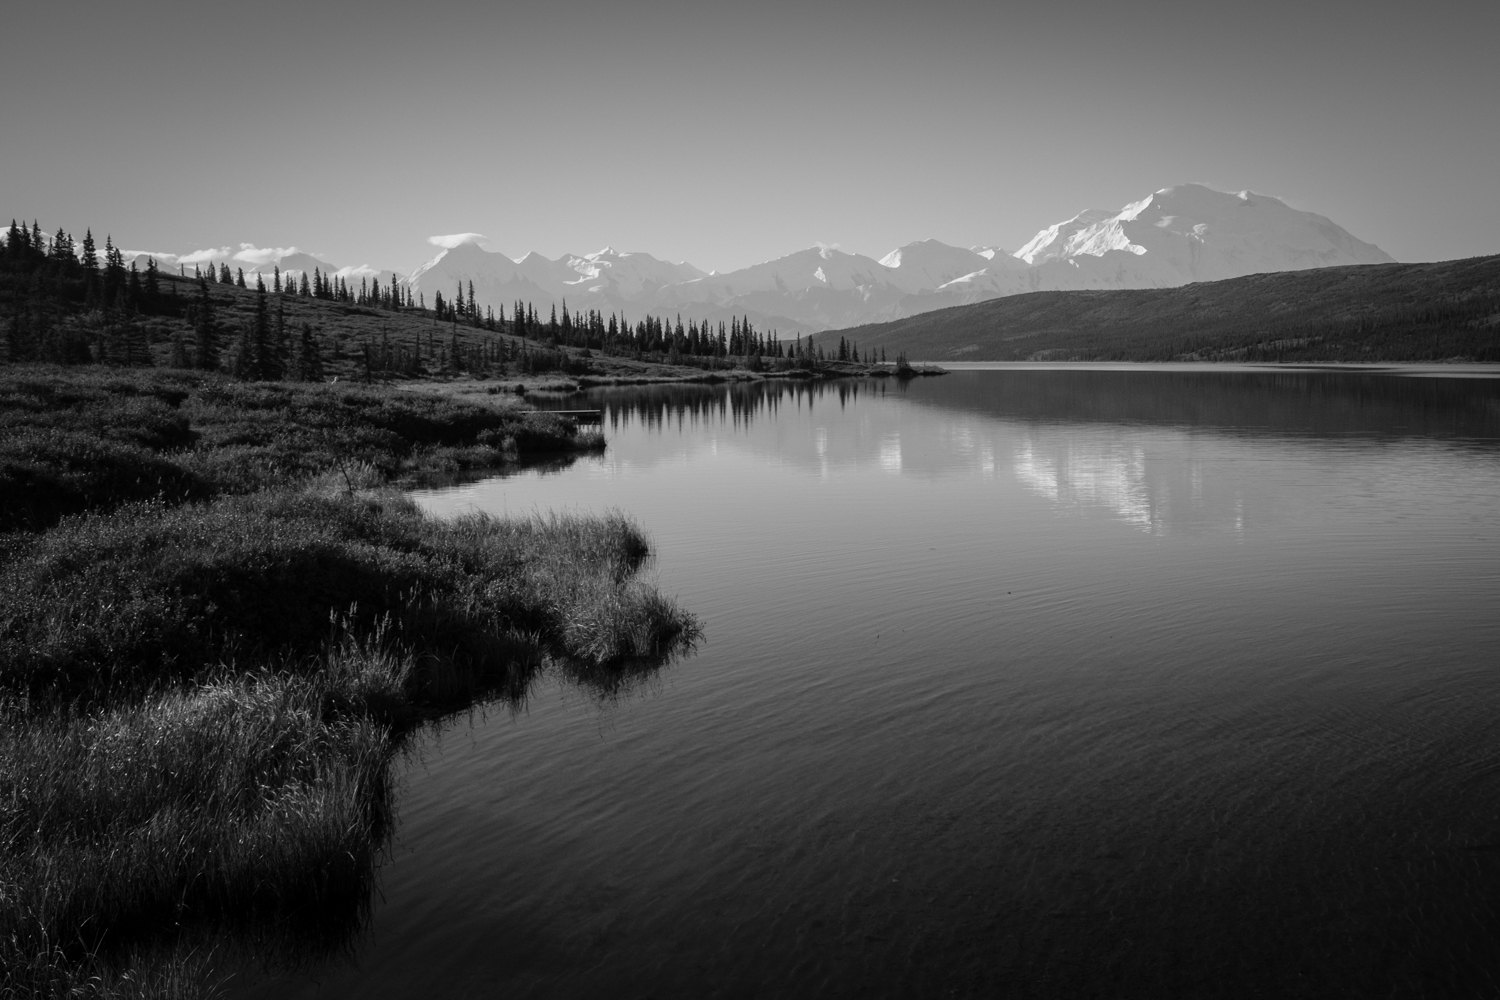 The scene at Wonder Lake, Denali National Park, Alaska. Shot on the FUJI X70.